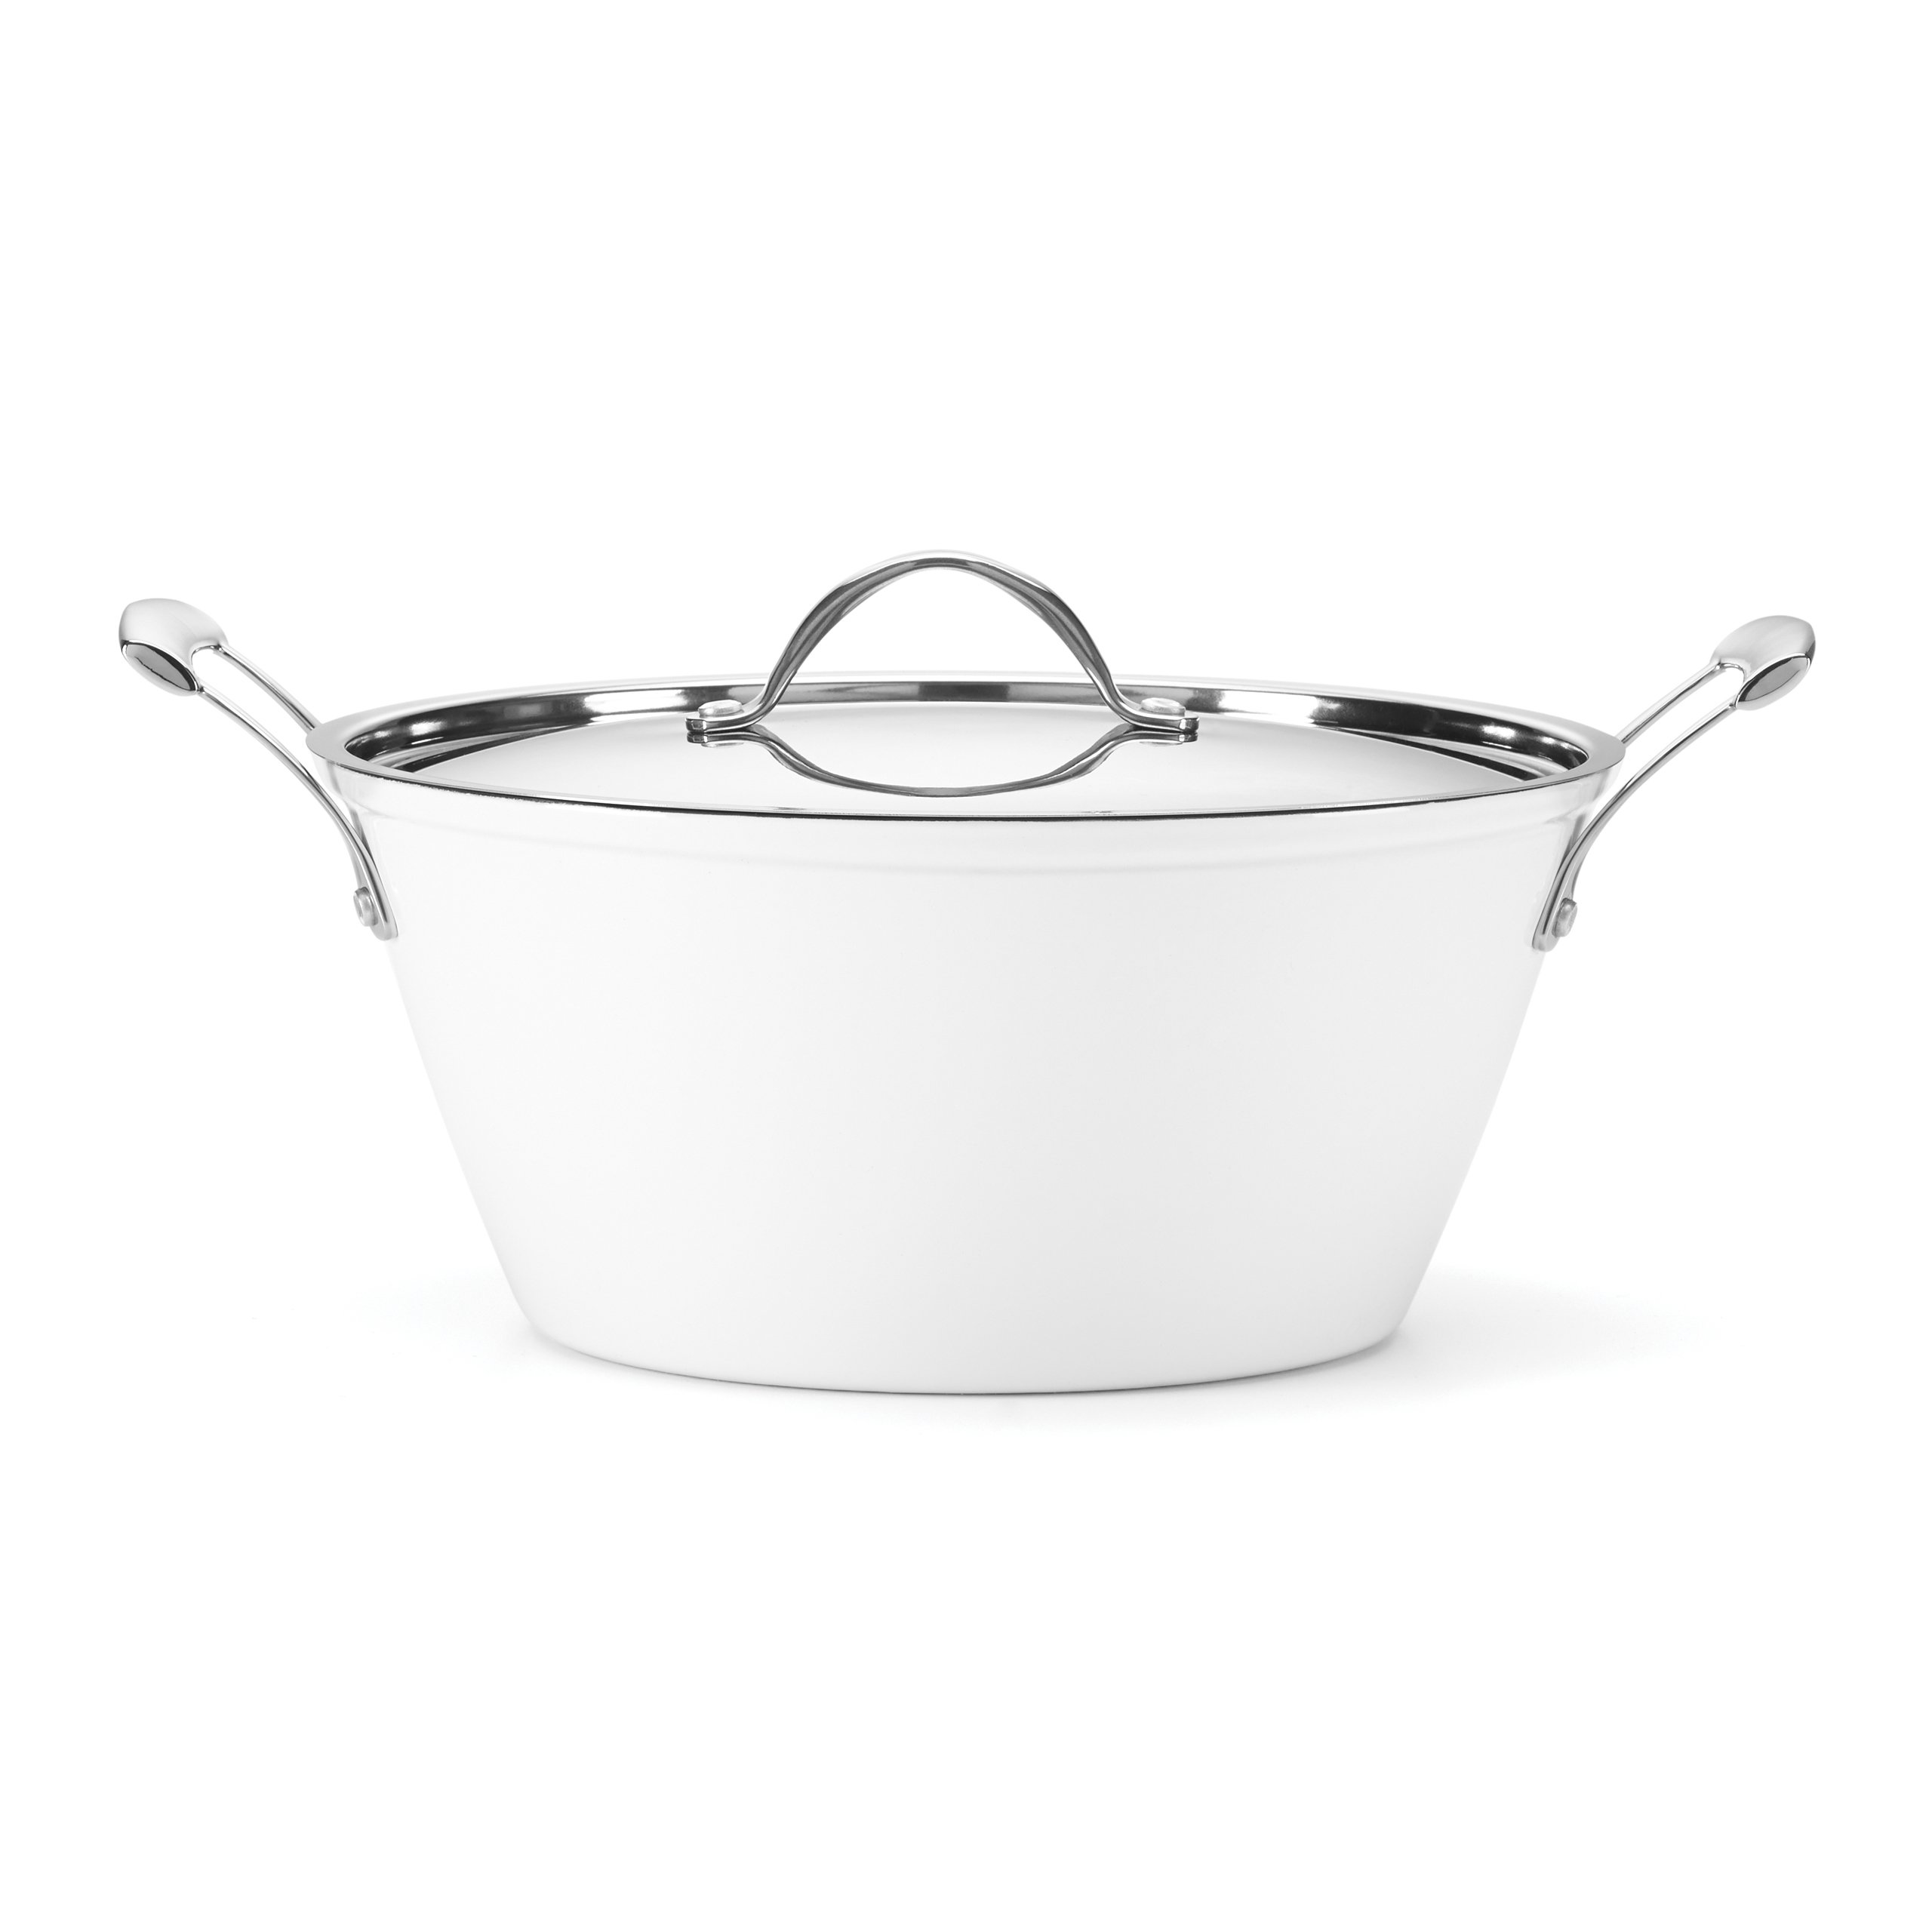 Food & Wine For Gorham Light Cast Iron 6 Quart Casserole, White by Food & Wine Collection for Gorham (Image #1)